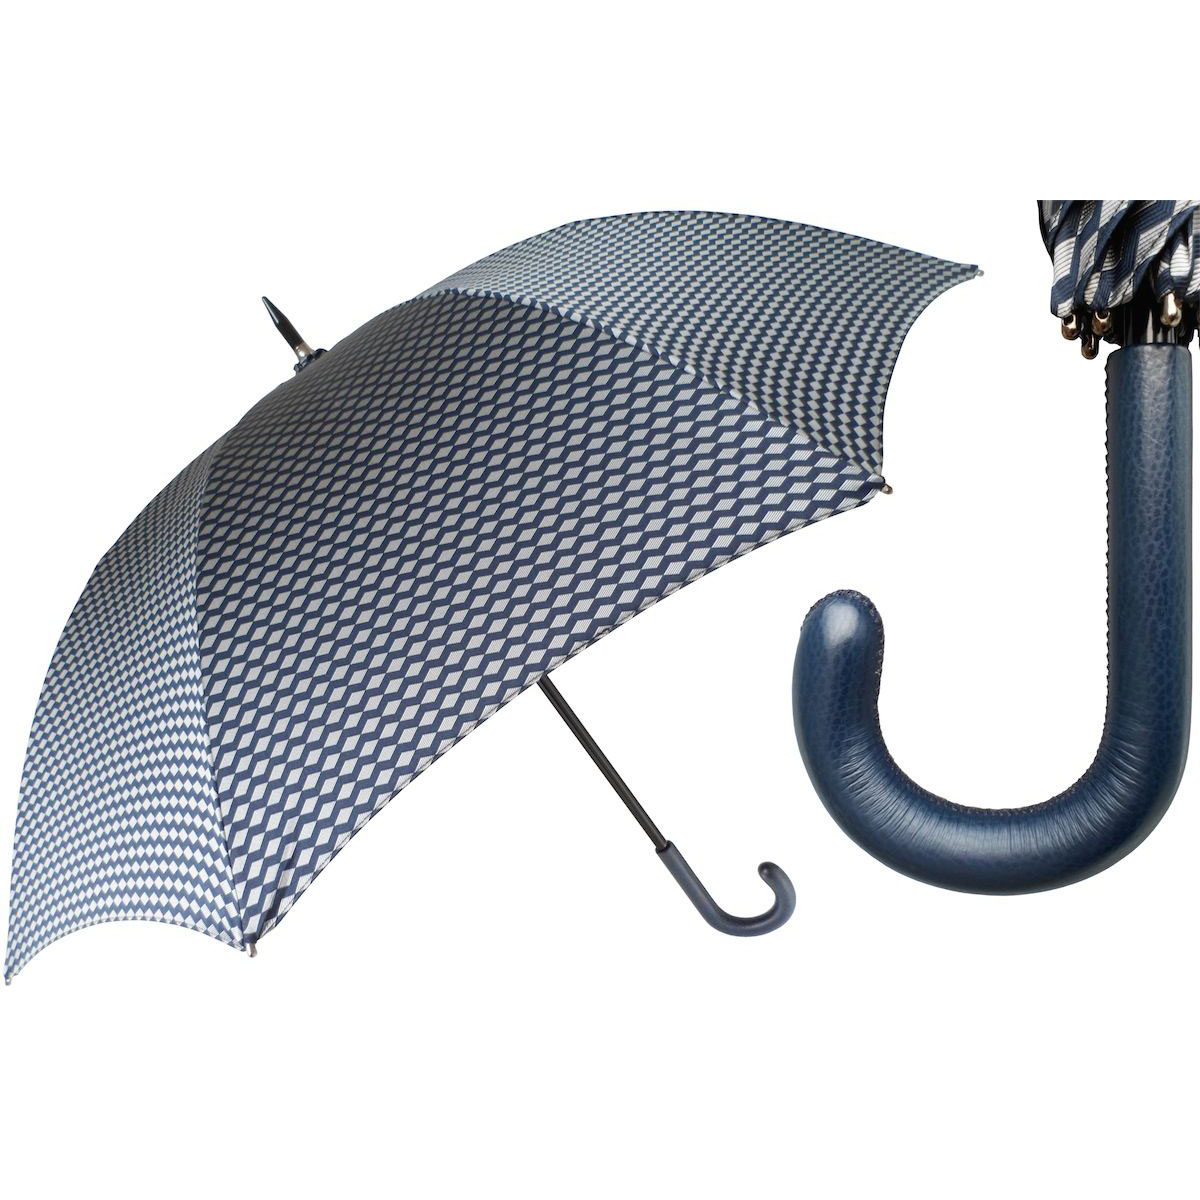 Pasotti Ombrelli Design Men's Umbrella - Blue Leather Handle